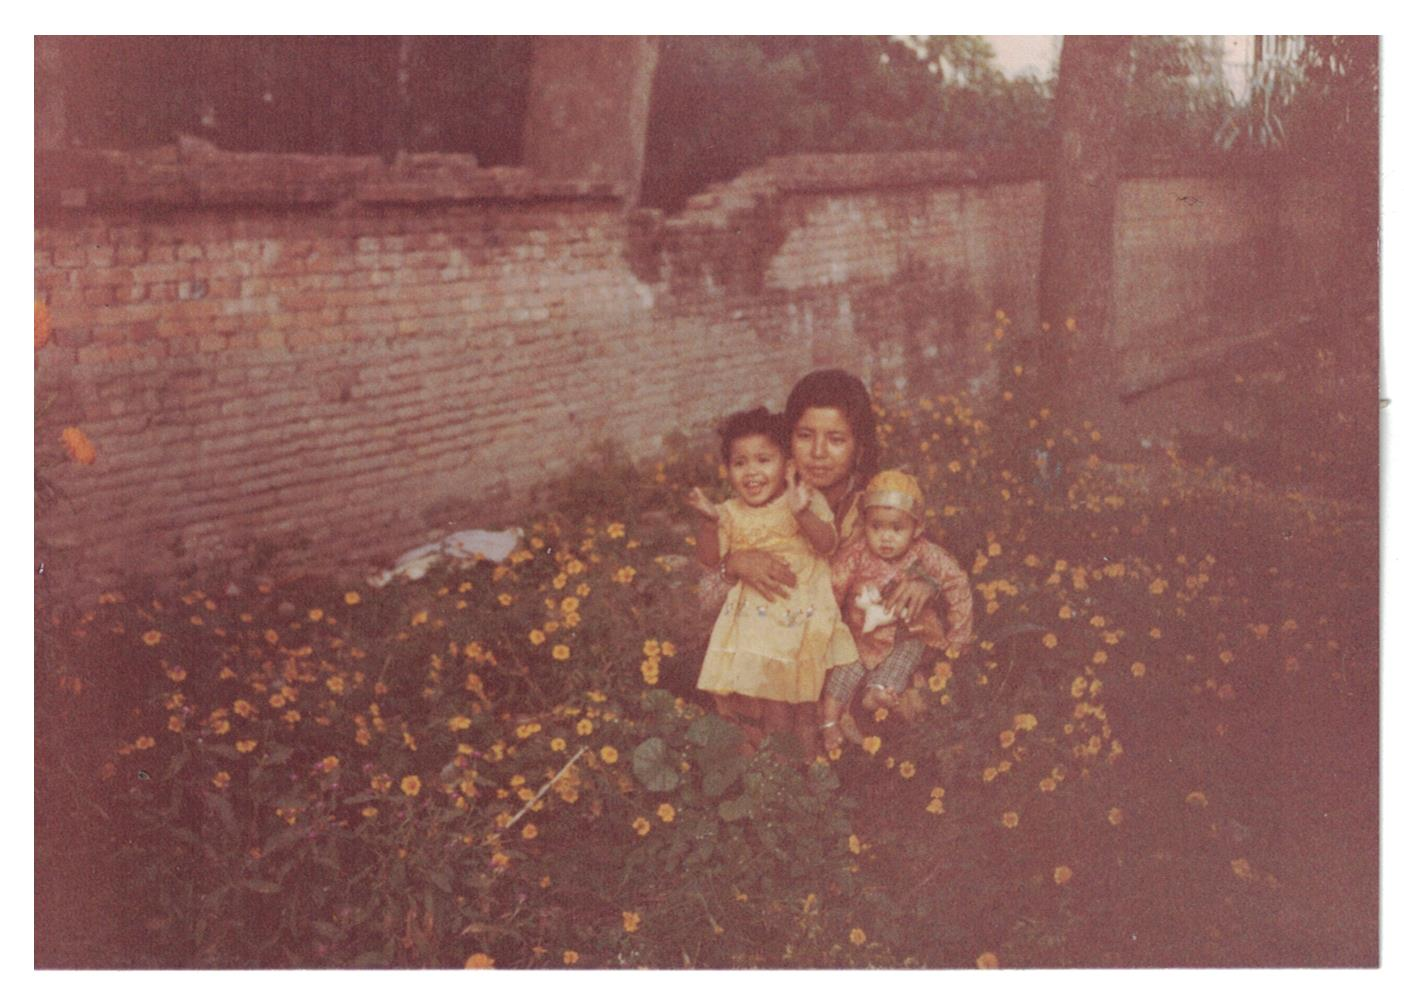 A picture with my mom and me (on the left) and my sister, Shraddha (on the right)